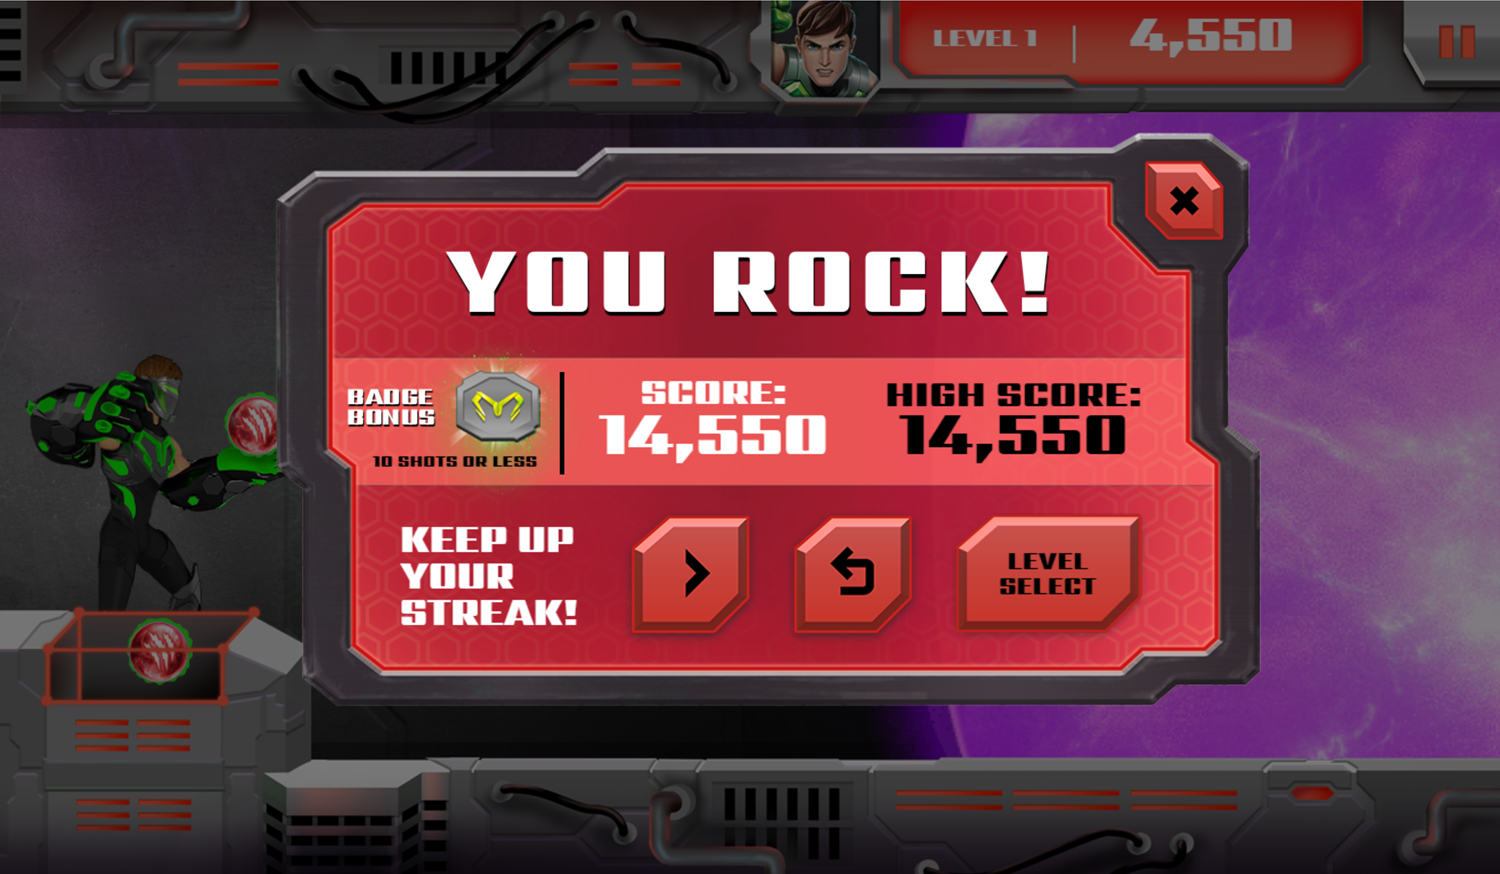 Max Steel Match and Destroy Game Level Beat Screen Screenshot.